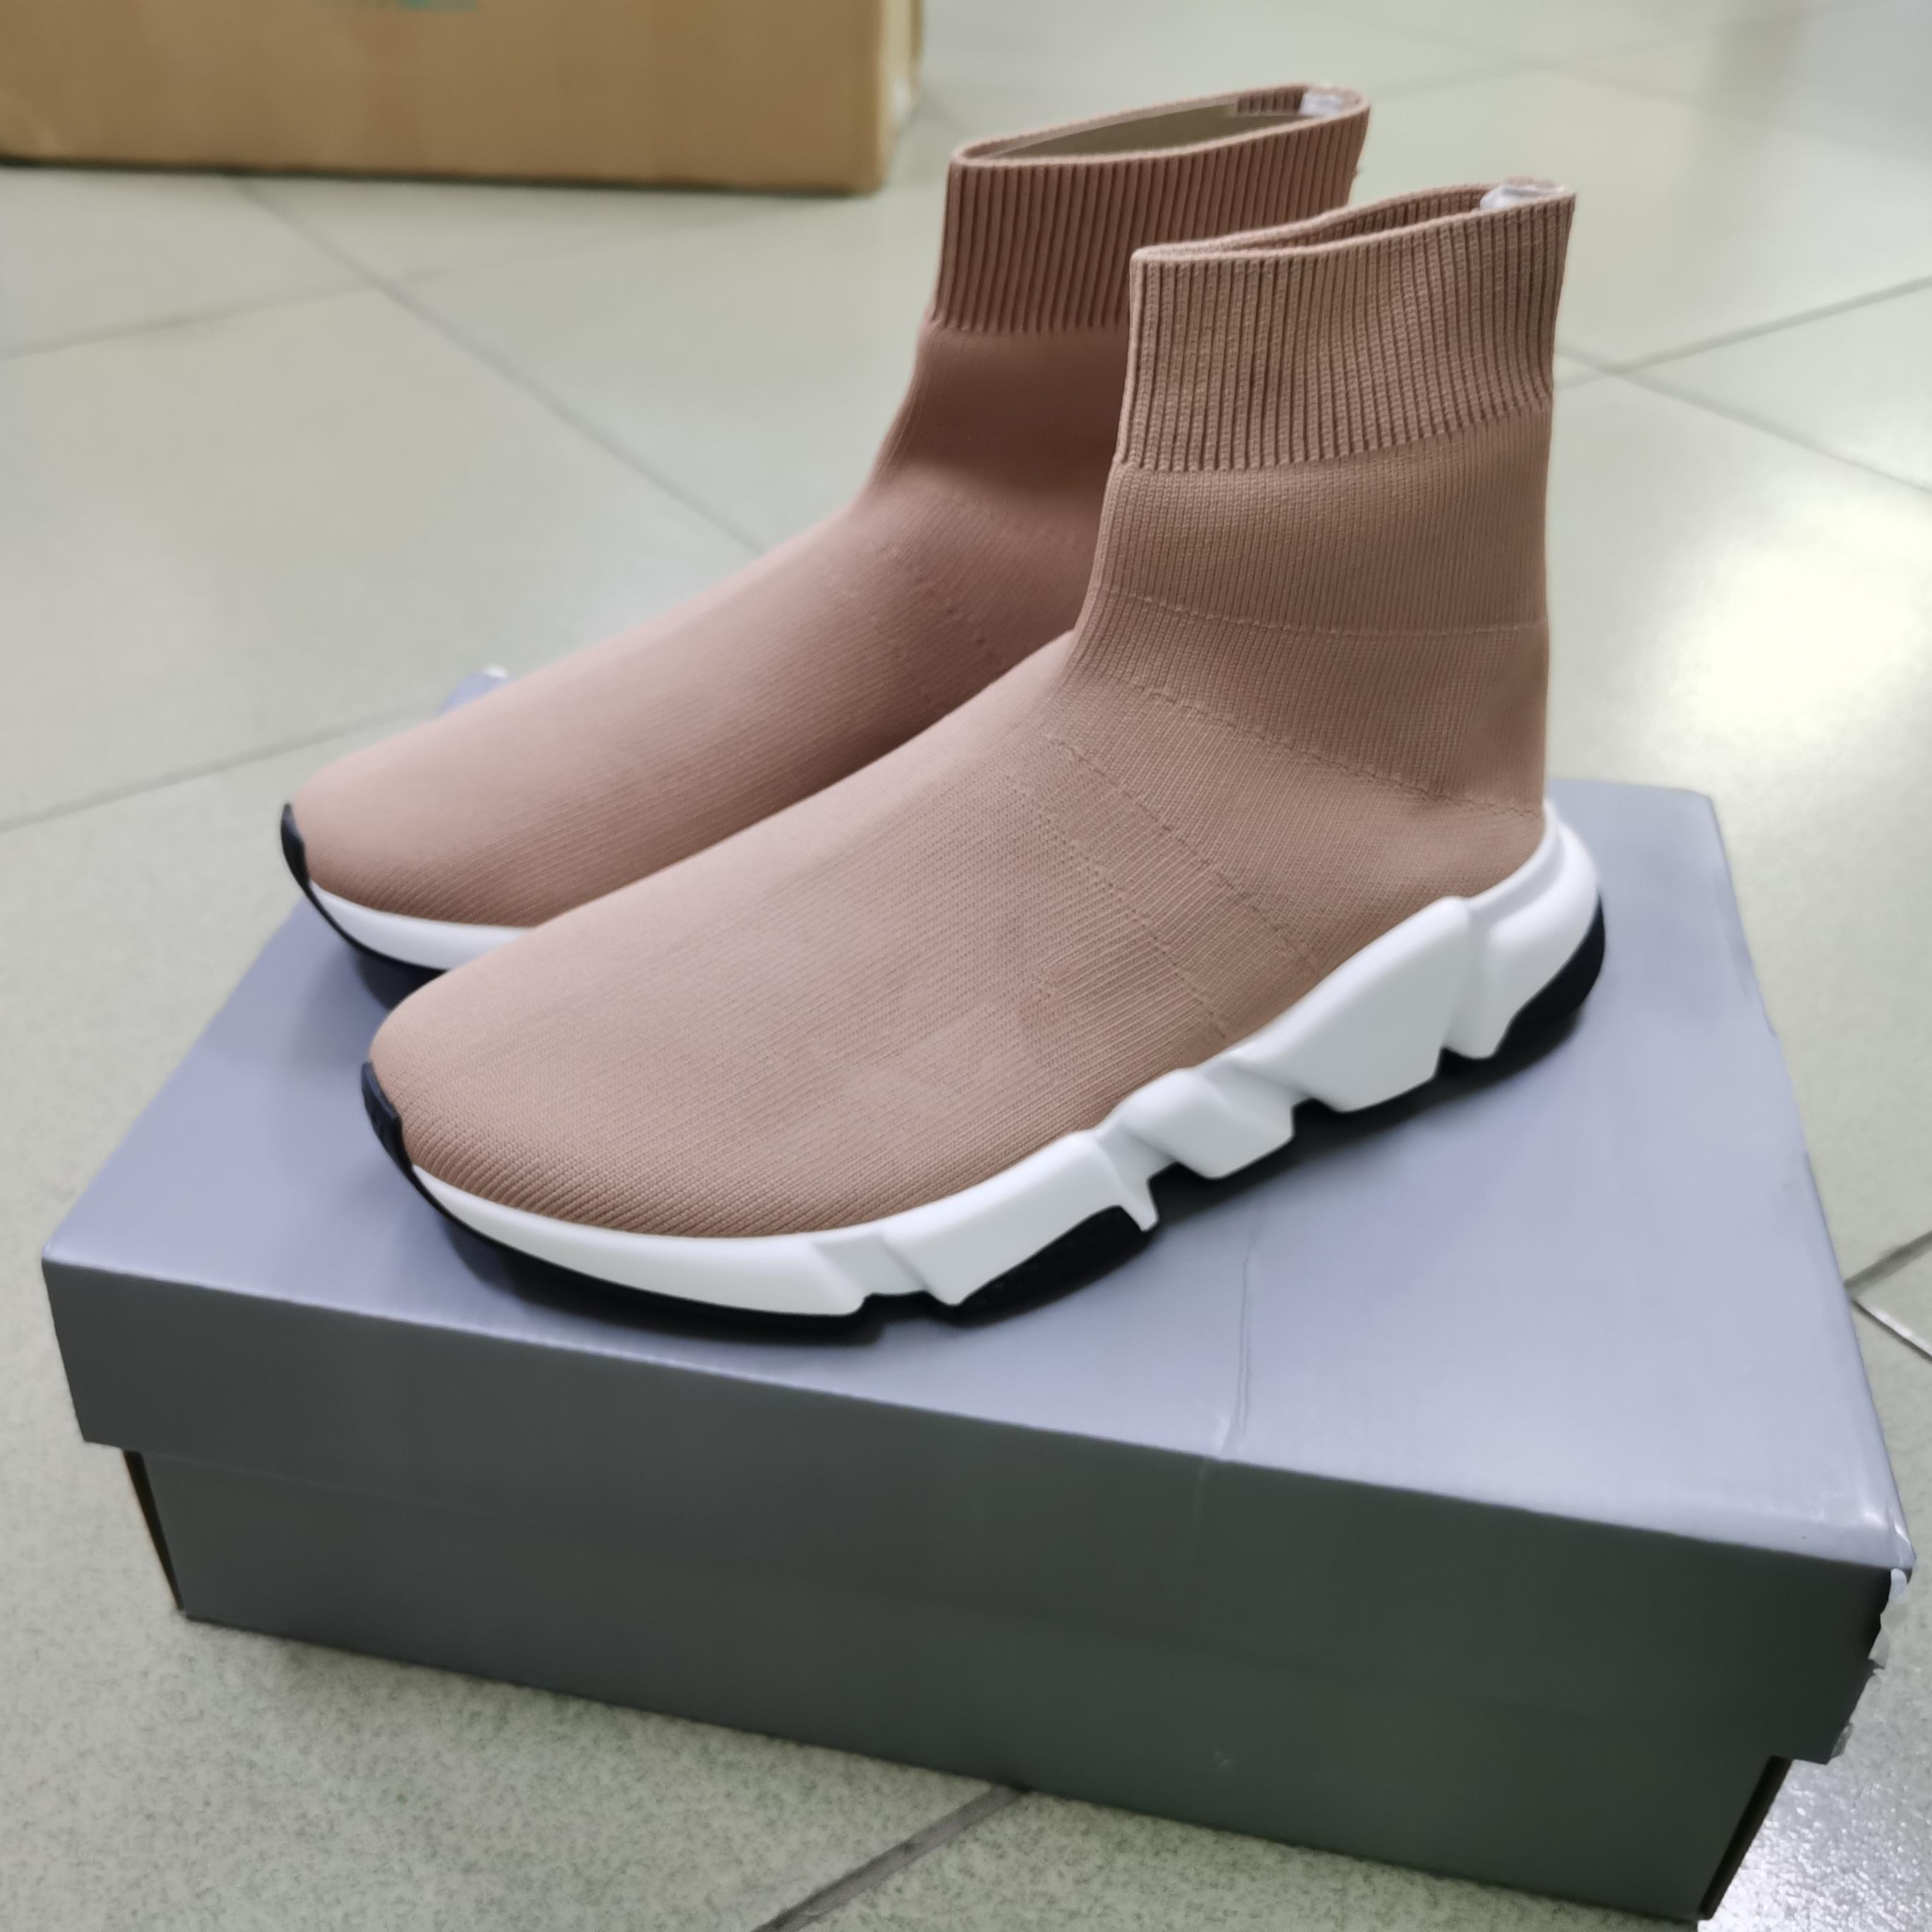 2020 Men Speed Sock Sneaker Nude stretch-knit Mid Sneakers Women Lightweight Mid-top Trainer Slip-on Casual Runner Shoes With Box